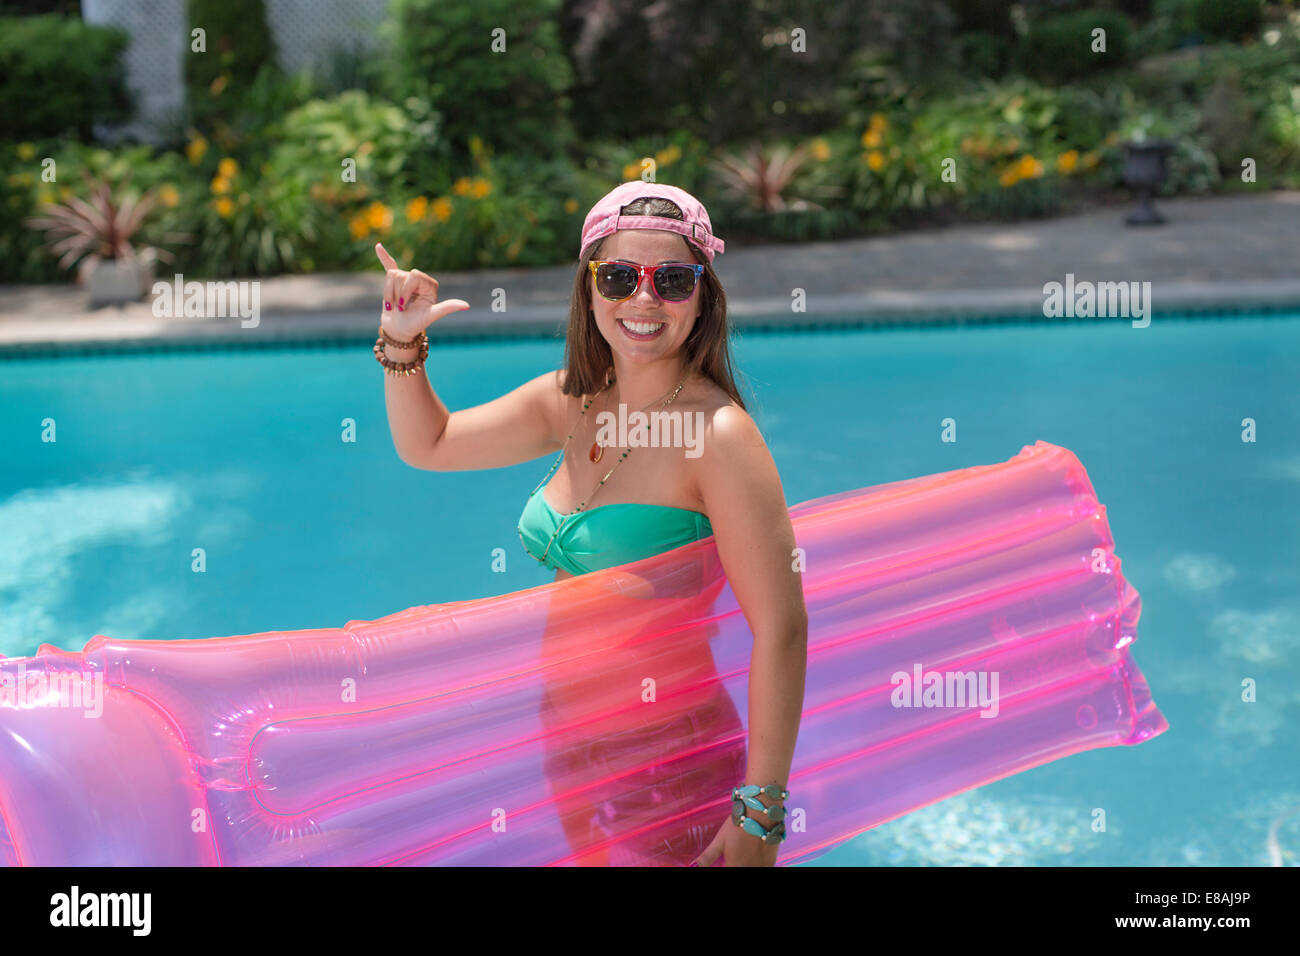 Portrait of young woman making hang loose sign at poolside - Stock Image